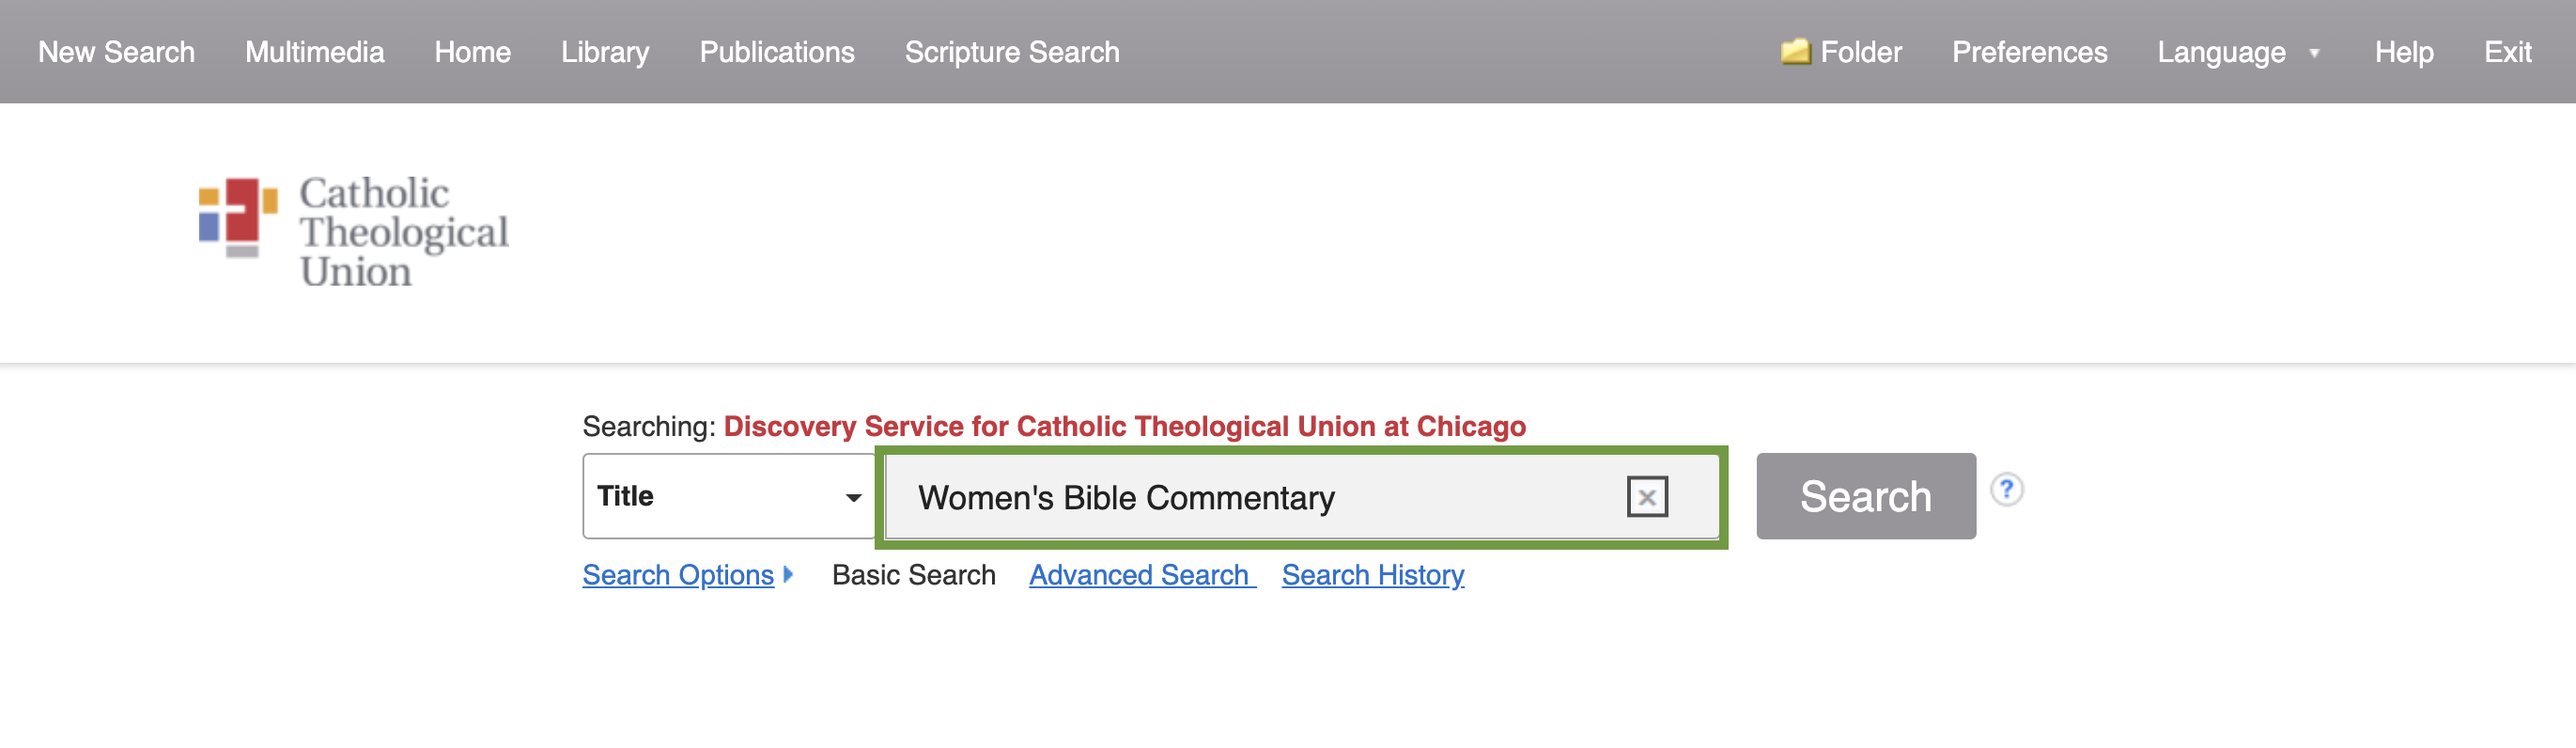 Search box for EBSCO Discovery Service